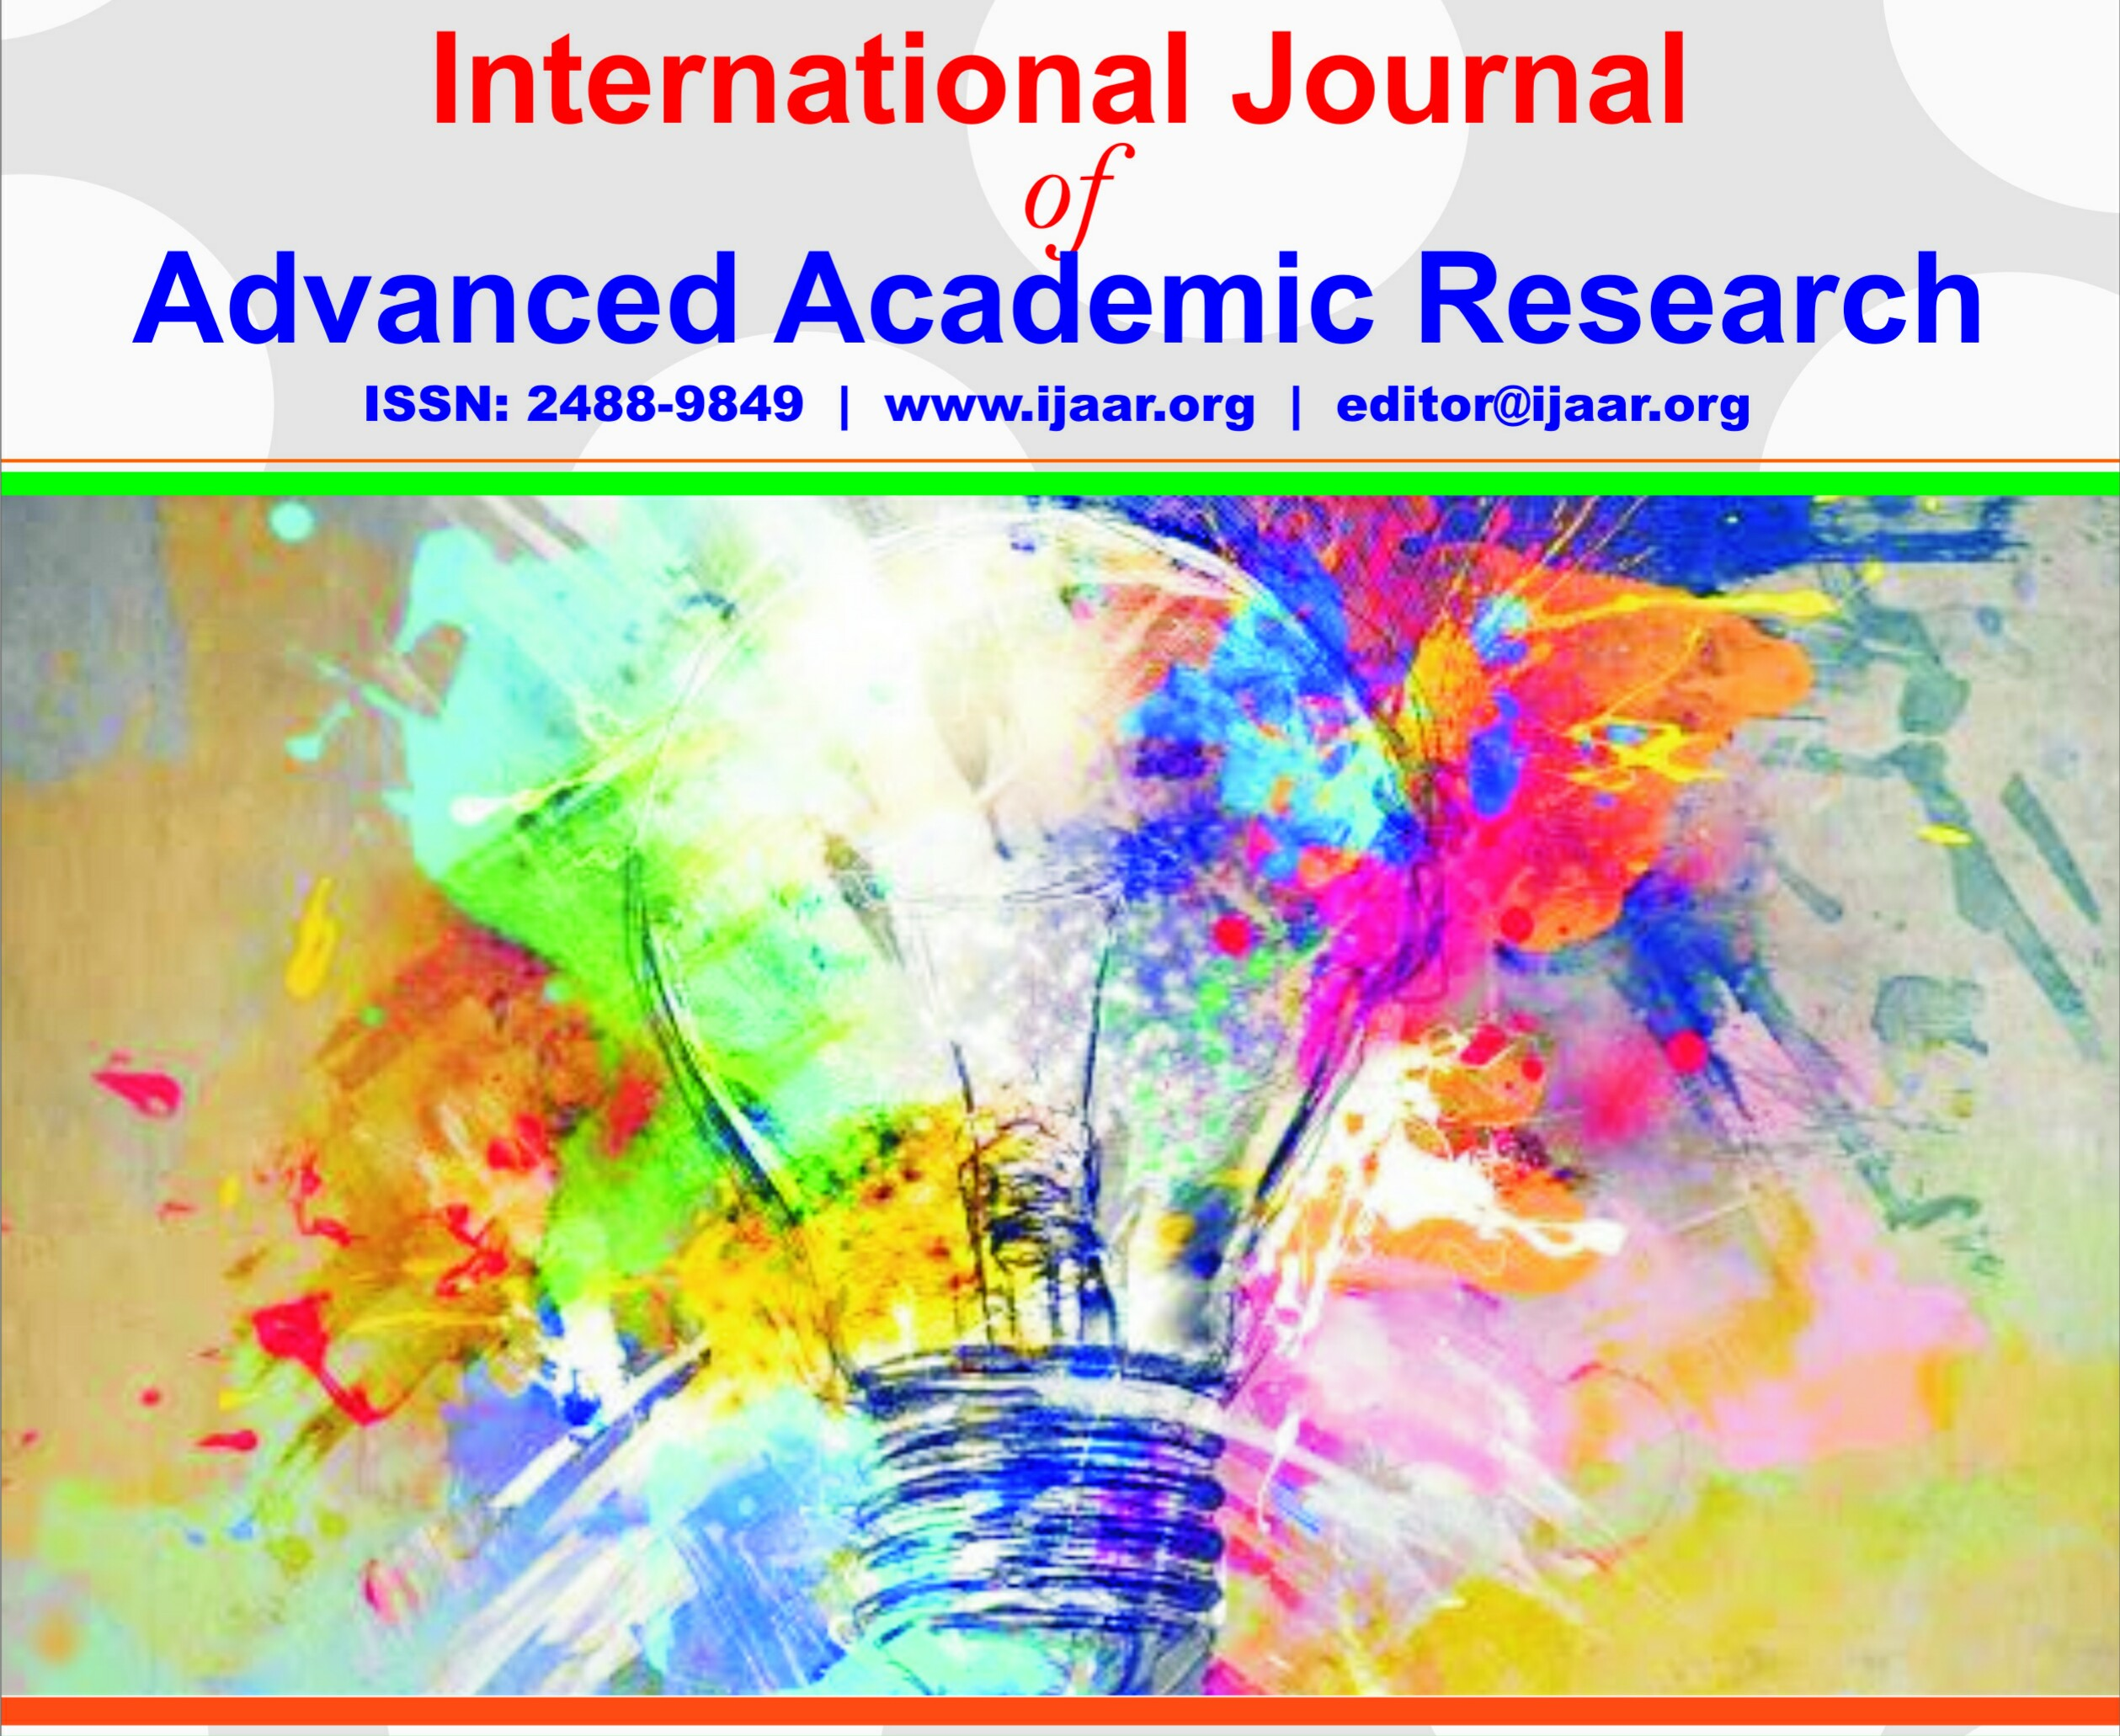 International Journal of Advanced Academic Research